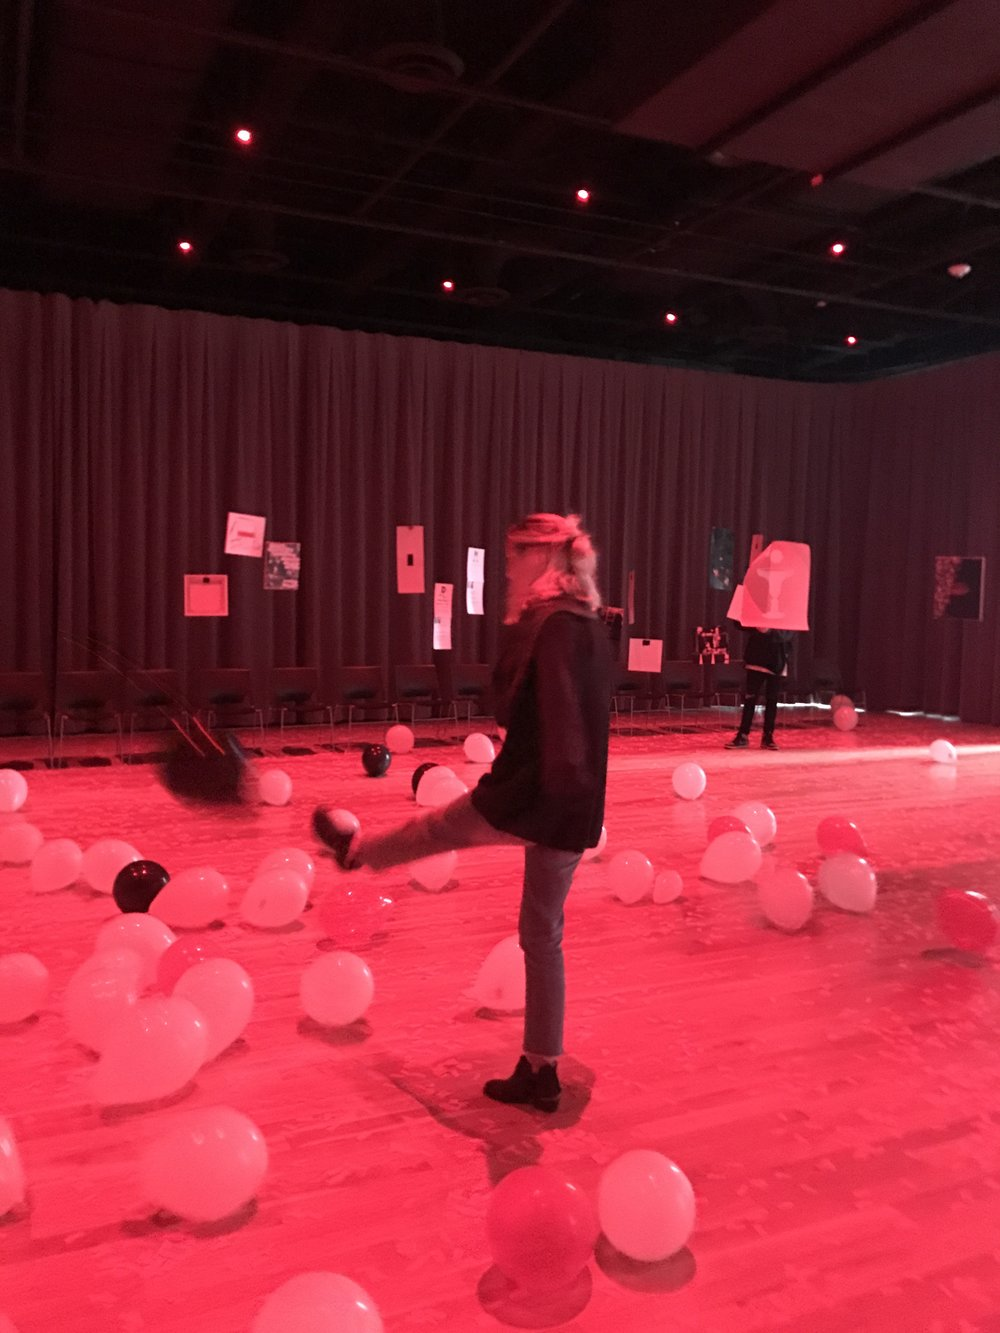 100 balloons were released in the gallery – 80 white and 20 red (representing the 20% of women who become survivors of sexual assault while in college)